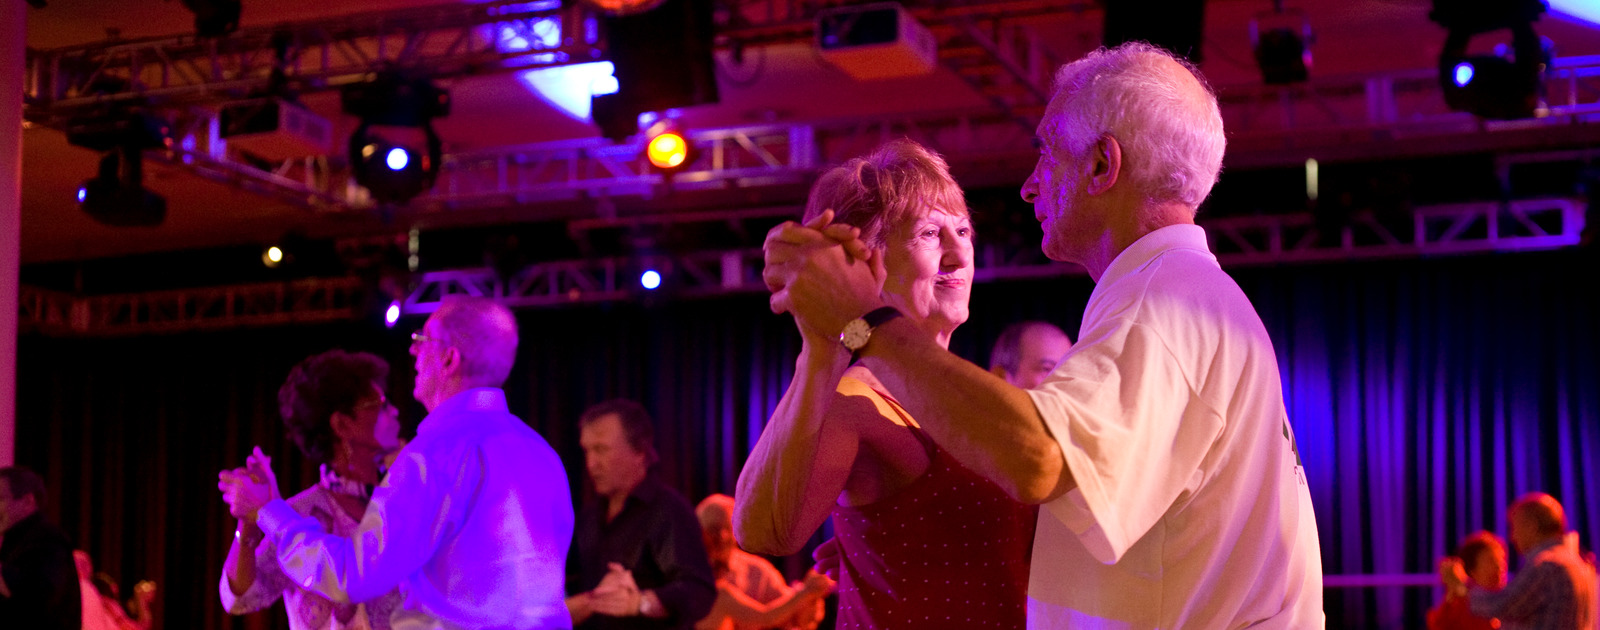 Couples Dancing at the Royal Festival Hall